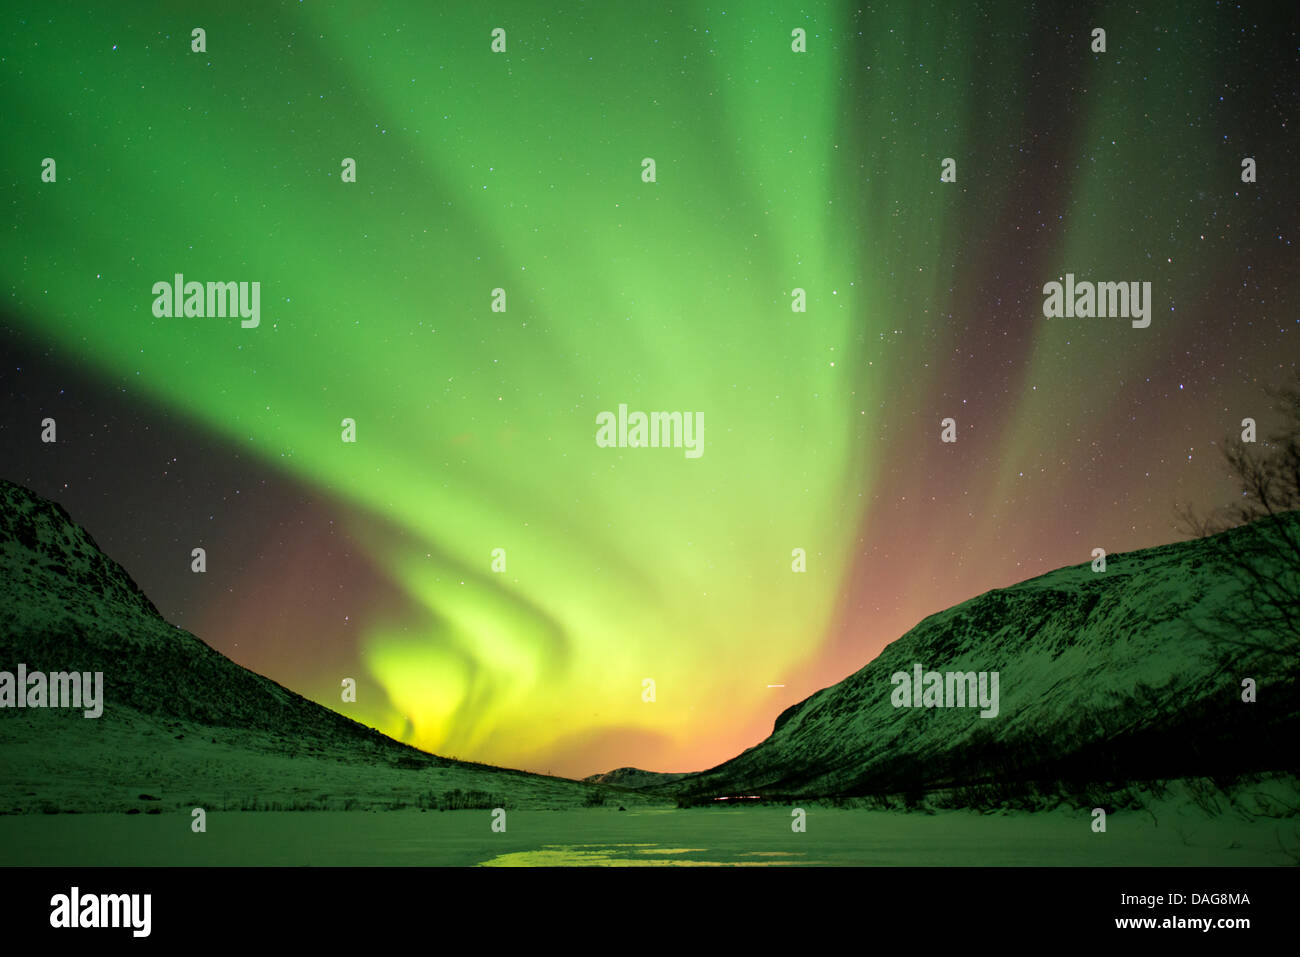 aurora curtain in front of the starry sky over snow-covered valley, Norway, Troms, Kvaloea, Kattfjordeidet - Stock Image